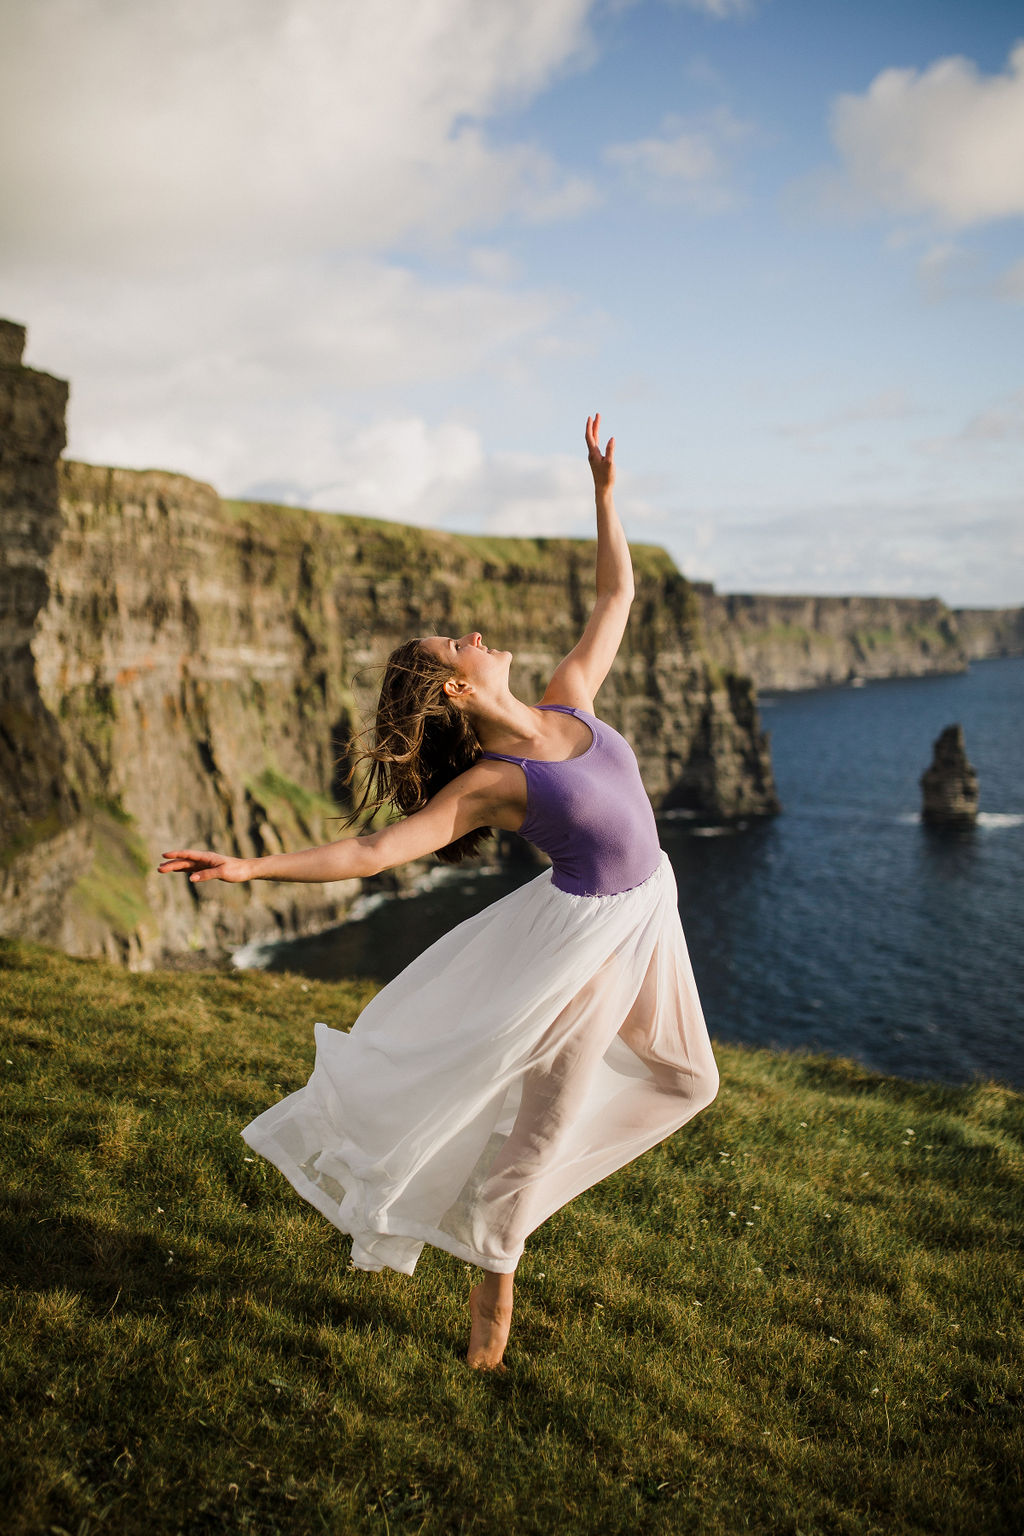 ireland desjardins studio rachel desjardins travel photography all rights reserved hostel dublin minnesota photographer lizcannor doolin liffs of moher boat dance